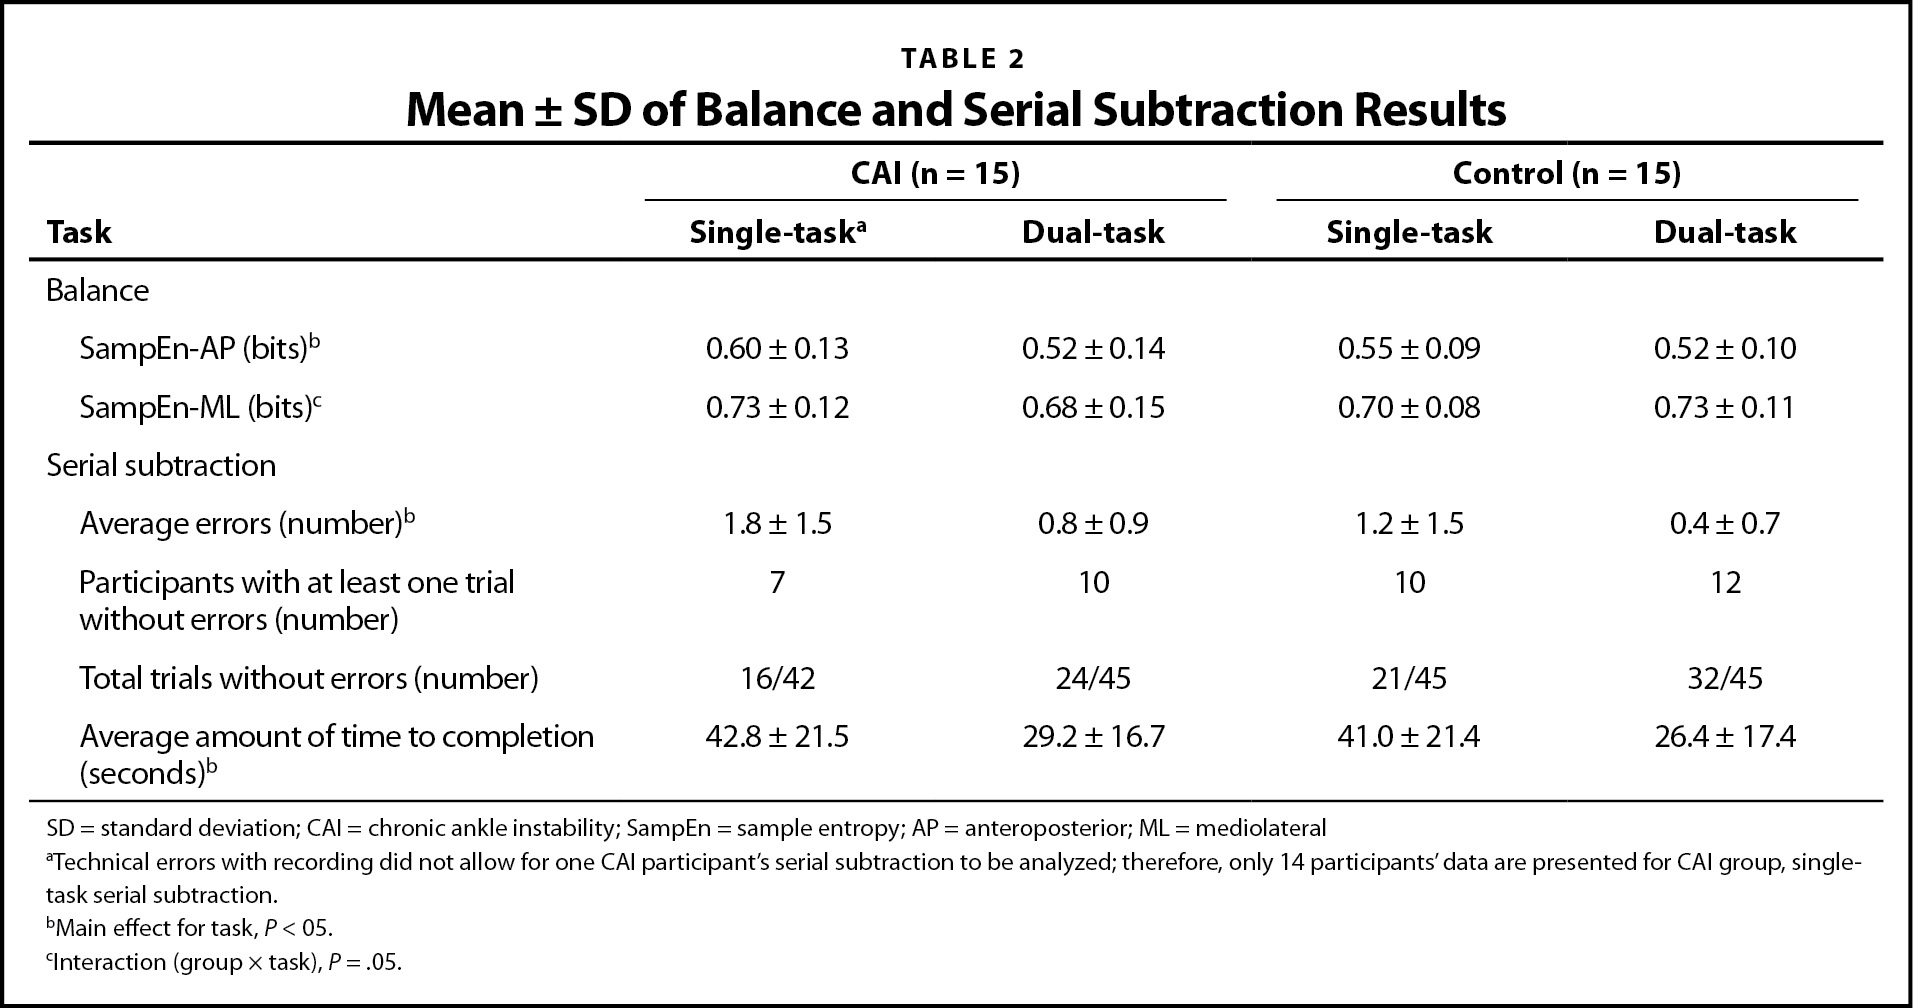 Mean ± SD of Balance and Serial Subtraction Results